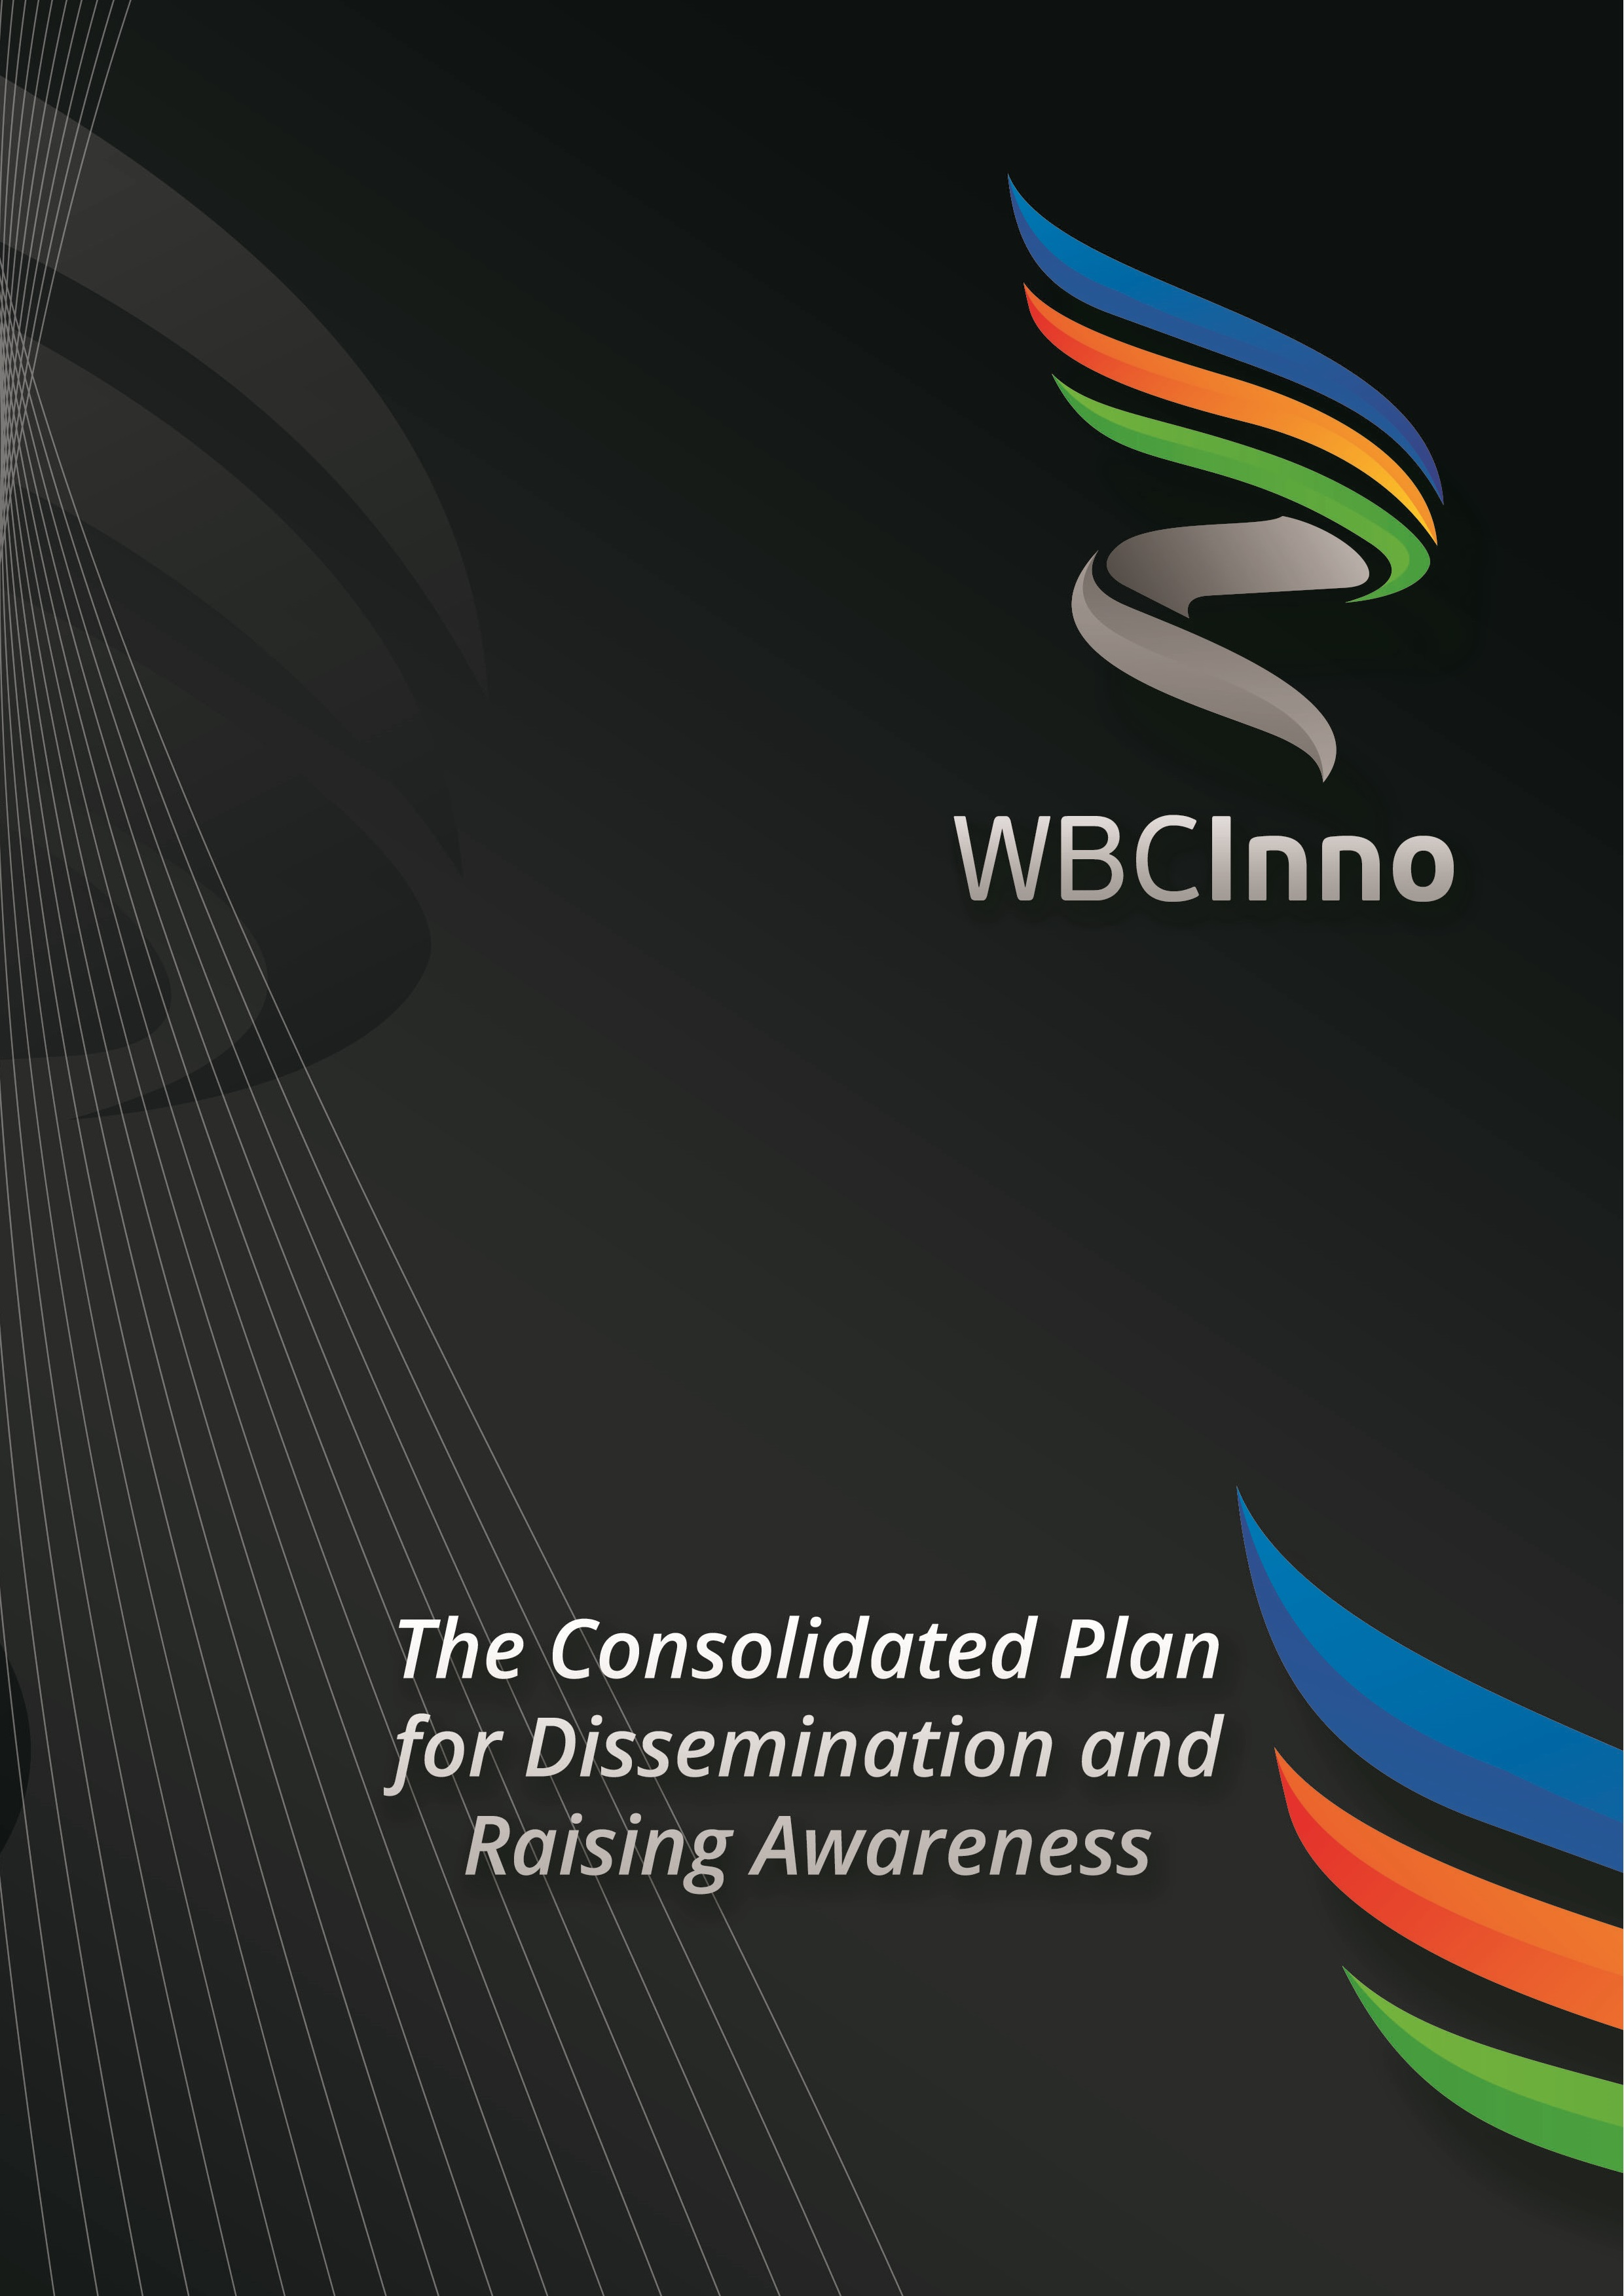 Consolidated Plan for dissemination and raising awareness